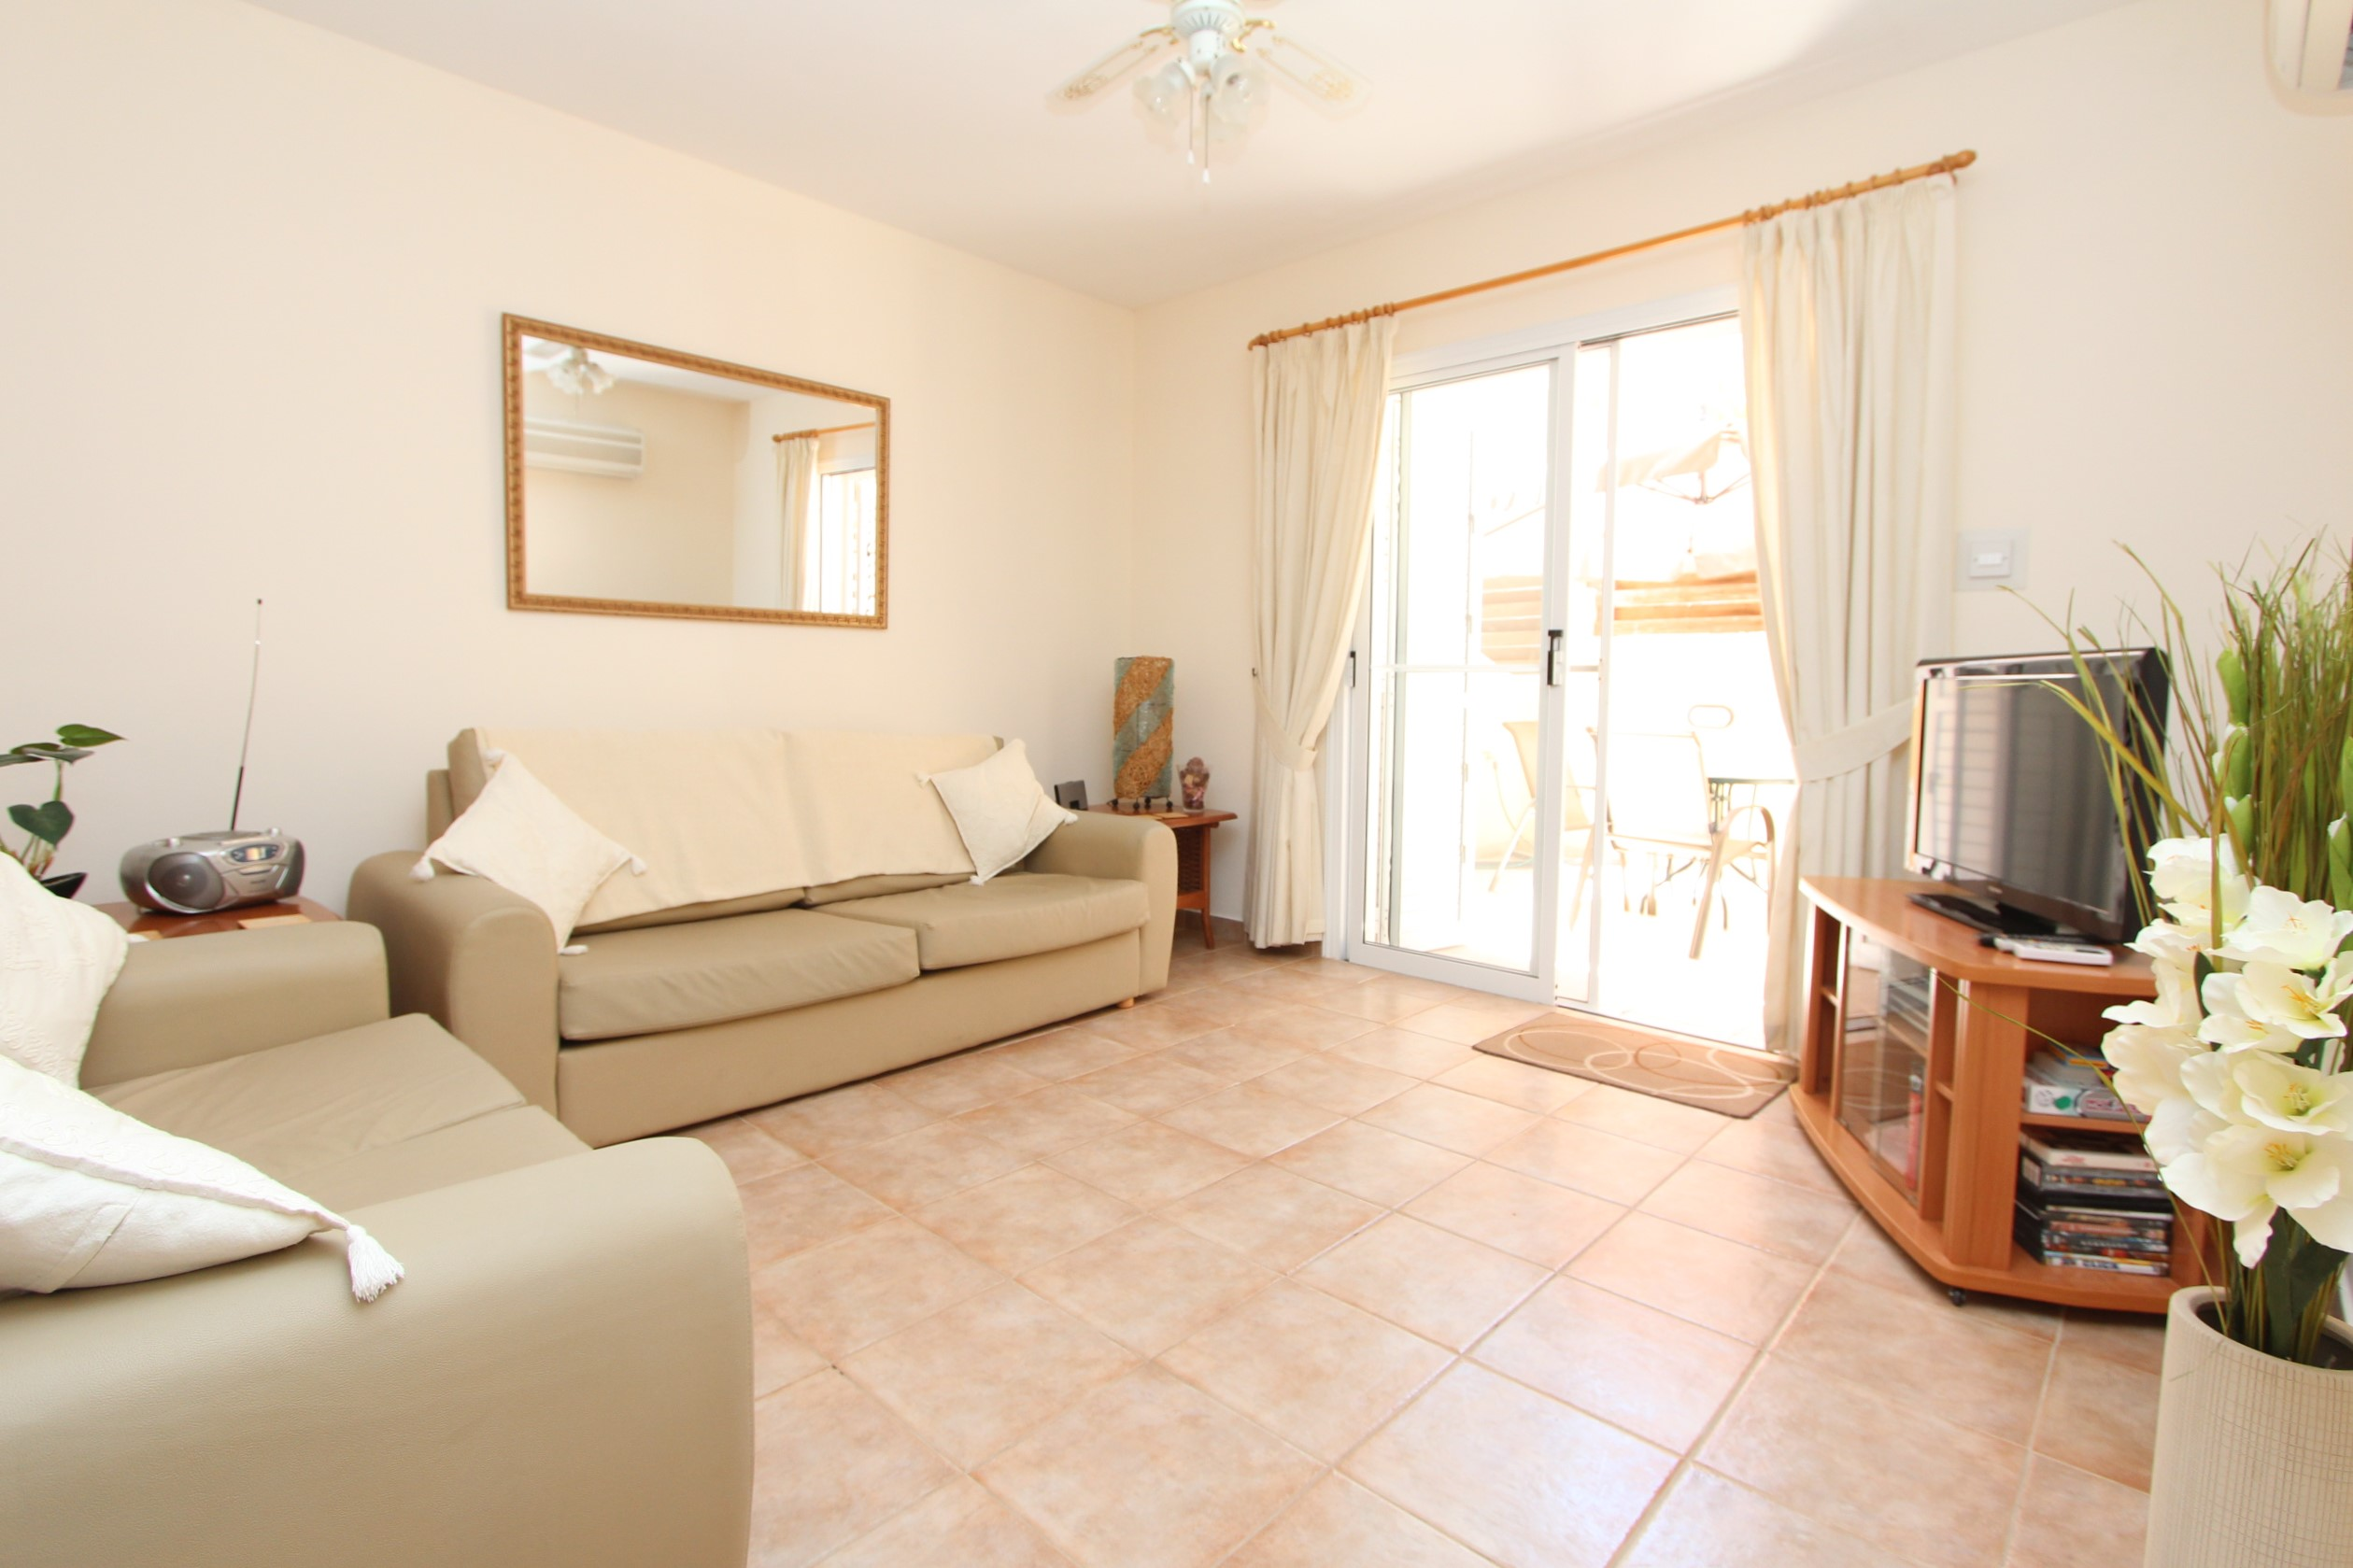 REF:  AC2-3-1 Summer Rental Available for Months May-Sept (3 months €2550).  Optional WIFI